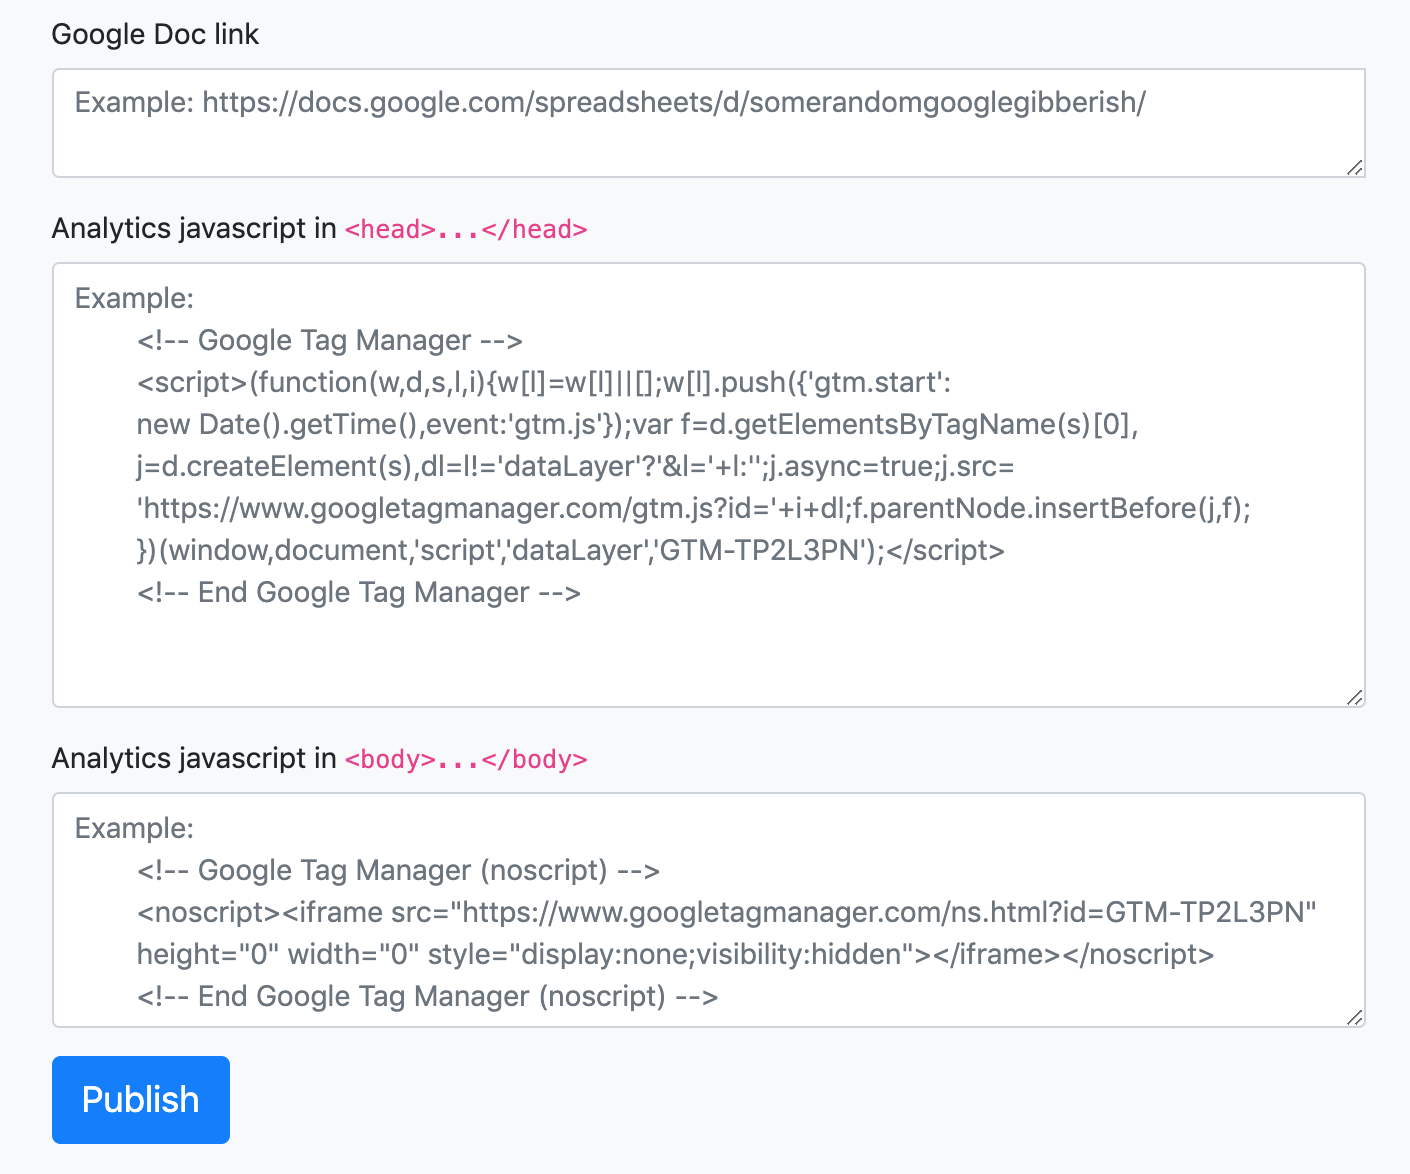 Use Google Analytics in Google Docs, tracking viewers of a Google Doc